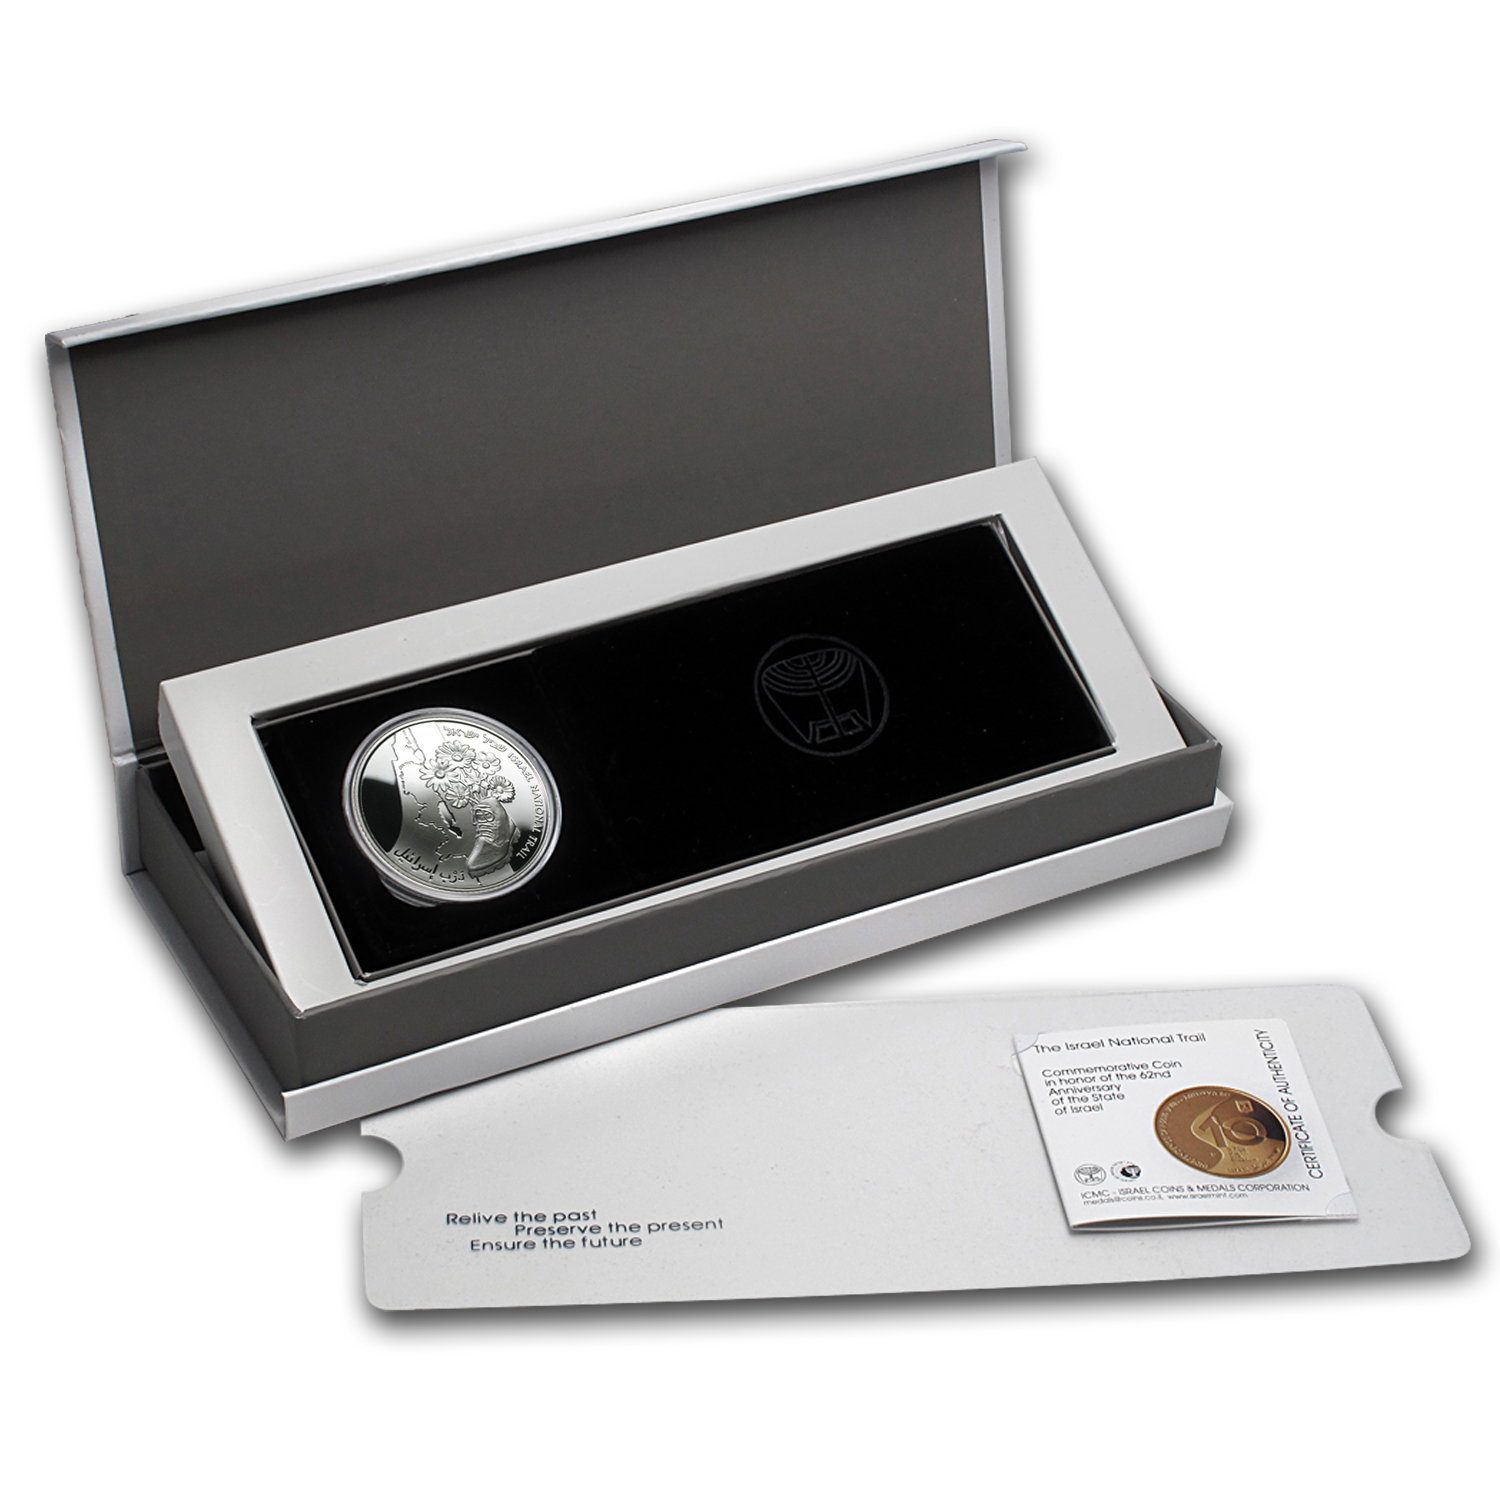 2010 Israel National Trail Proof Silver 2 NIS Coin (w/ box & coa)